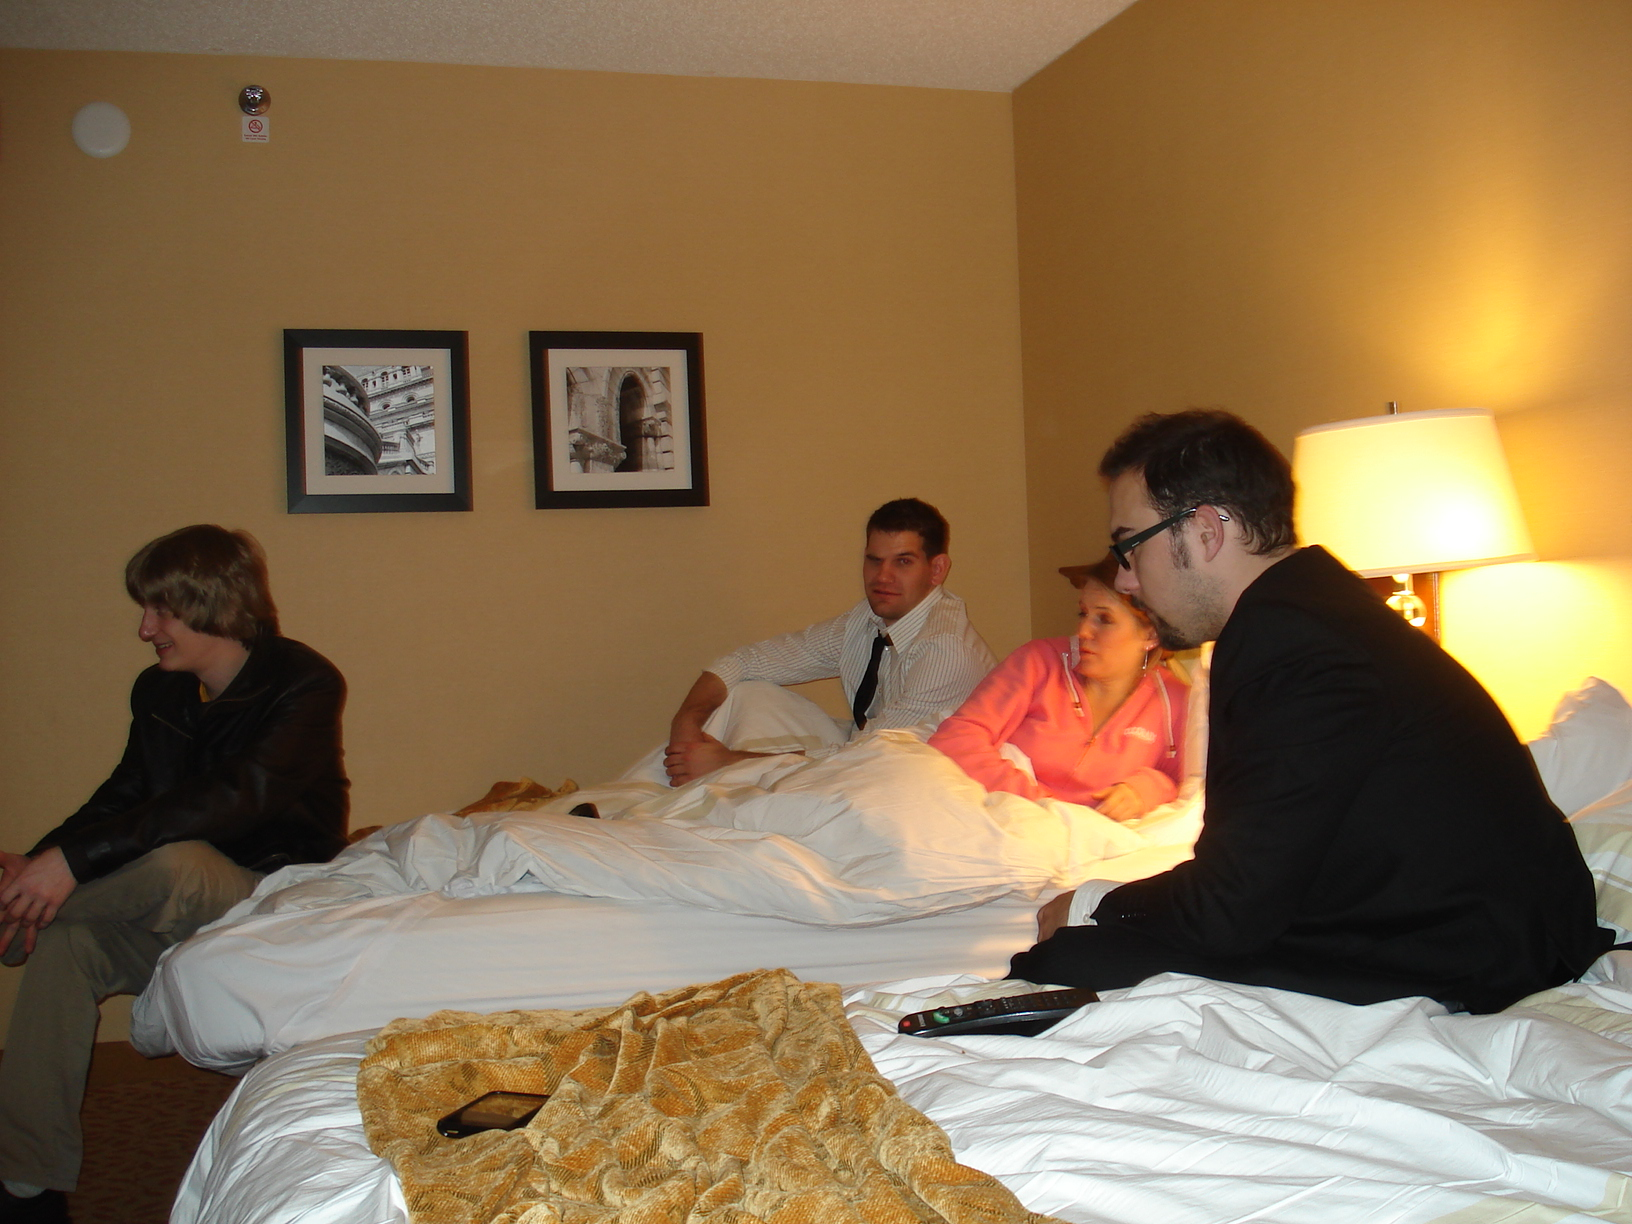 I totally don't remember Jason B being in our room!!!!  I don't even remember seeing him at the Holiday Party!